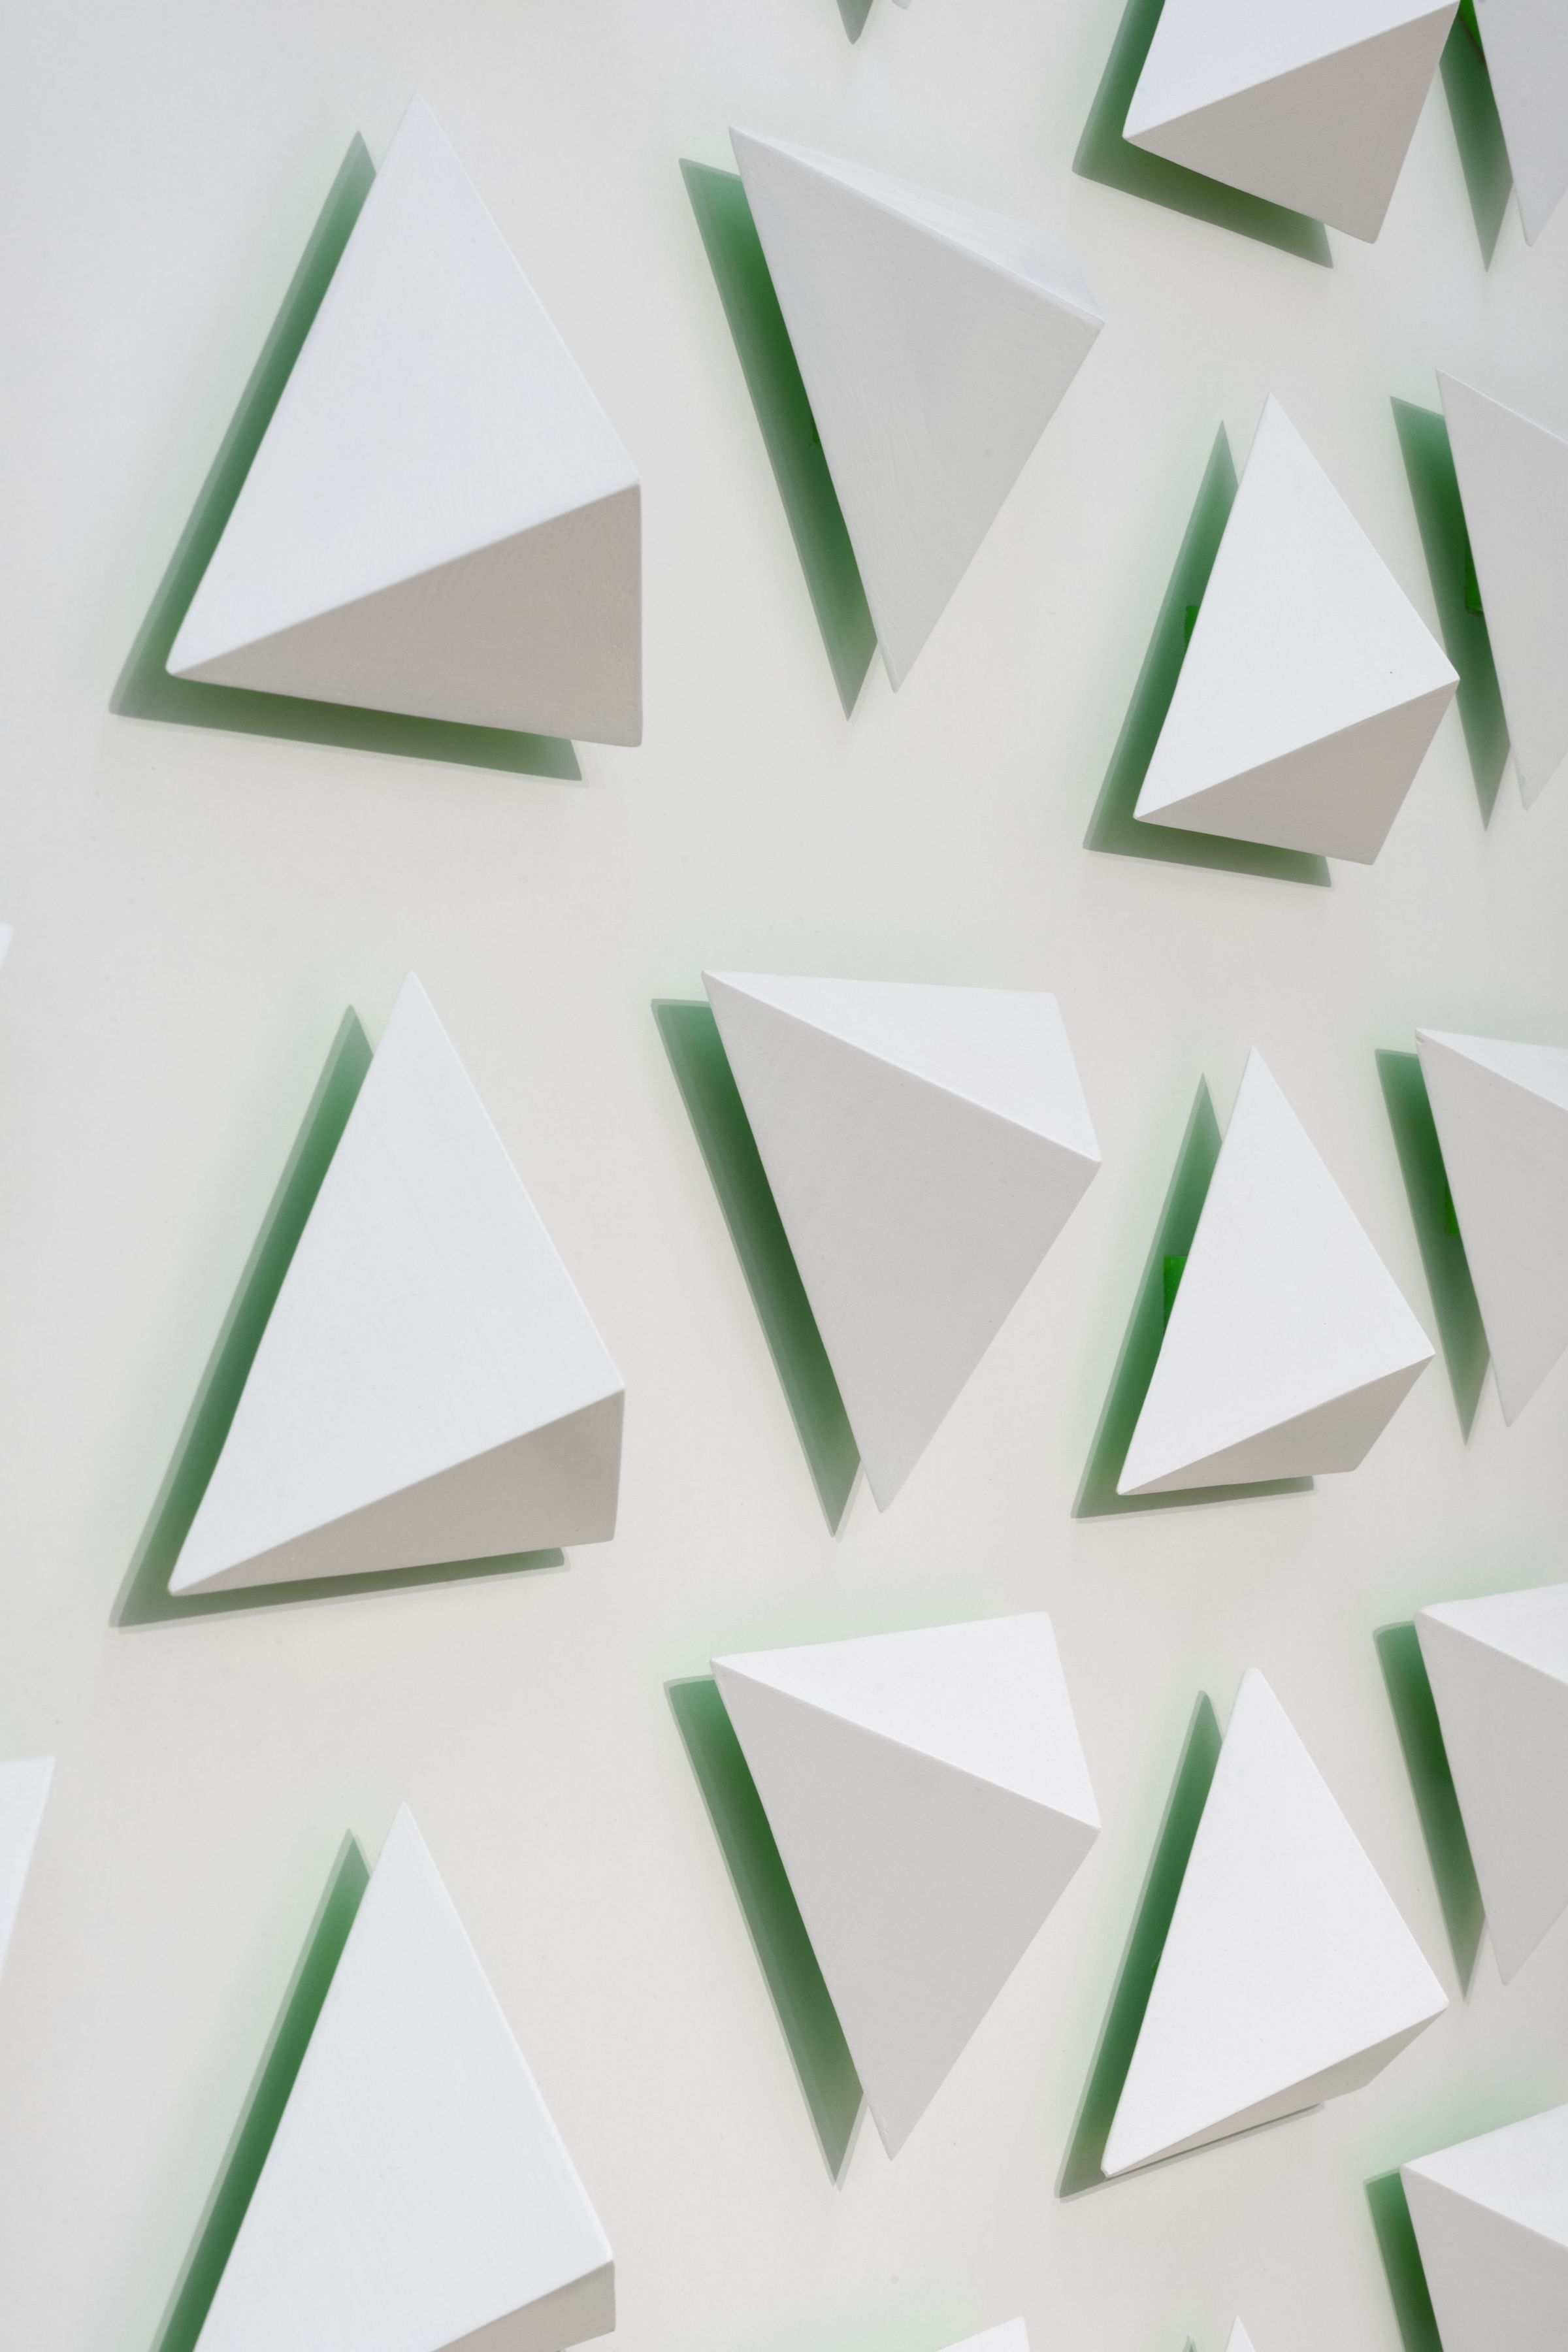 Luis Tomasello, Atmosphère chromoplastique N° 1029, 2013 (detail). Painting, acrylic and wood, 53 1/4 x 53 1/4 in.